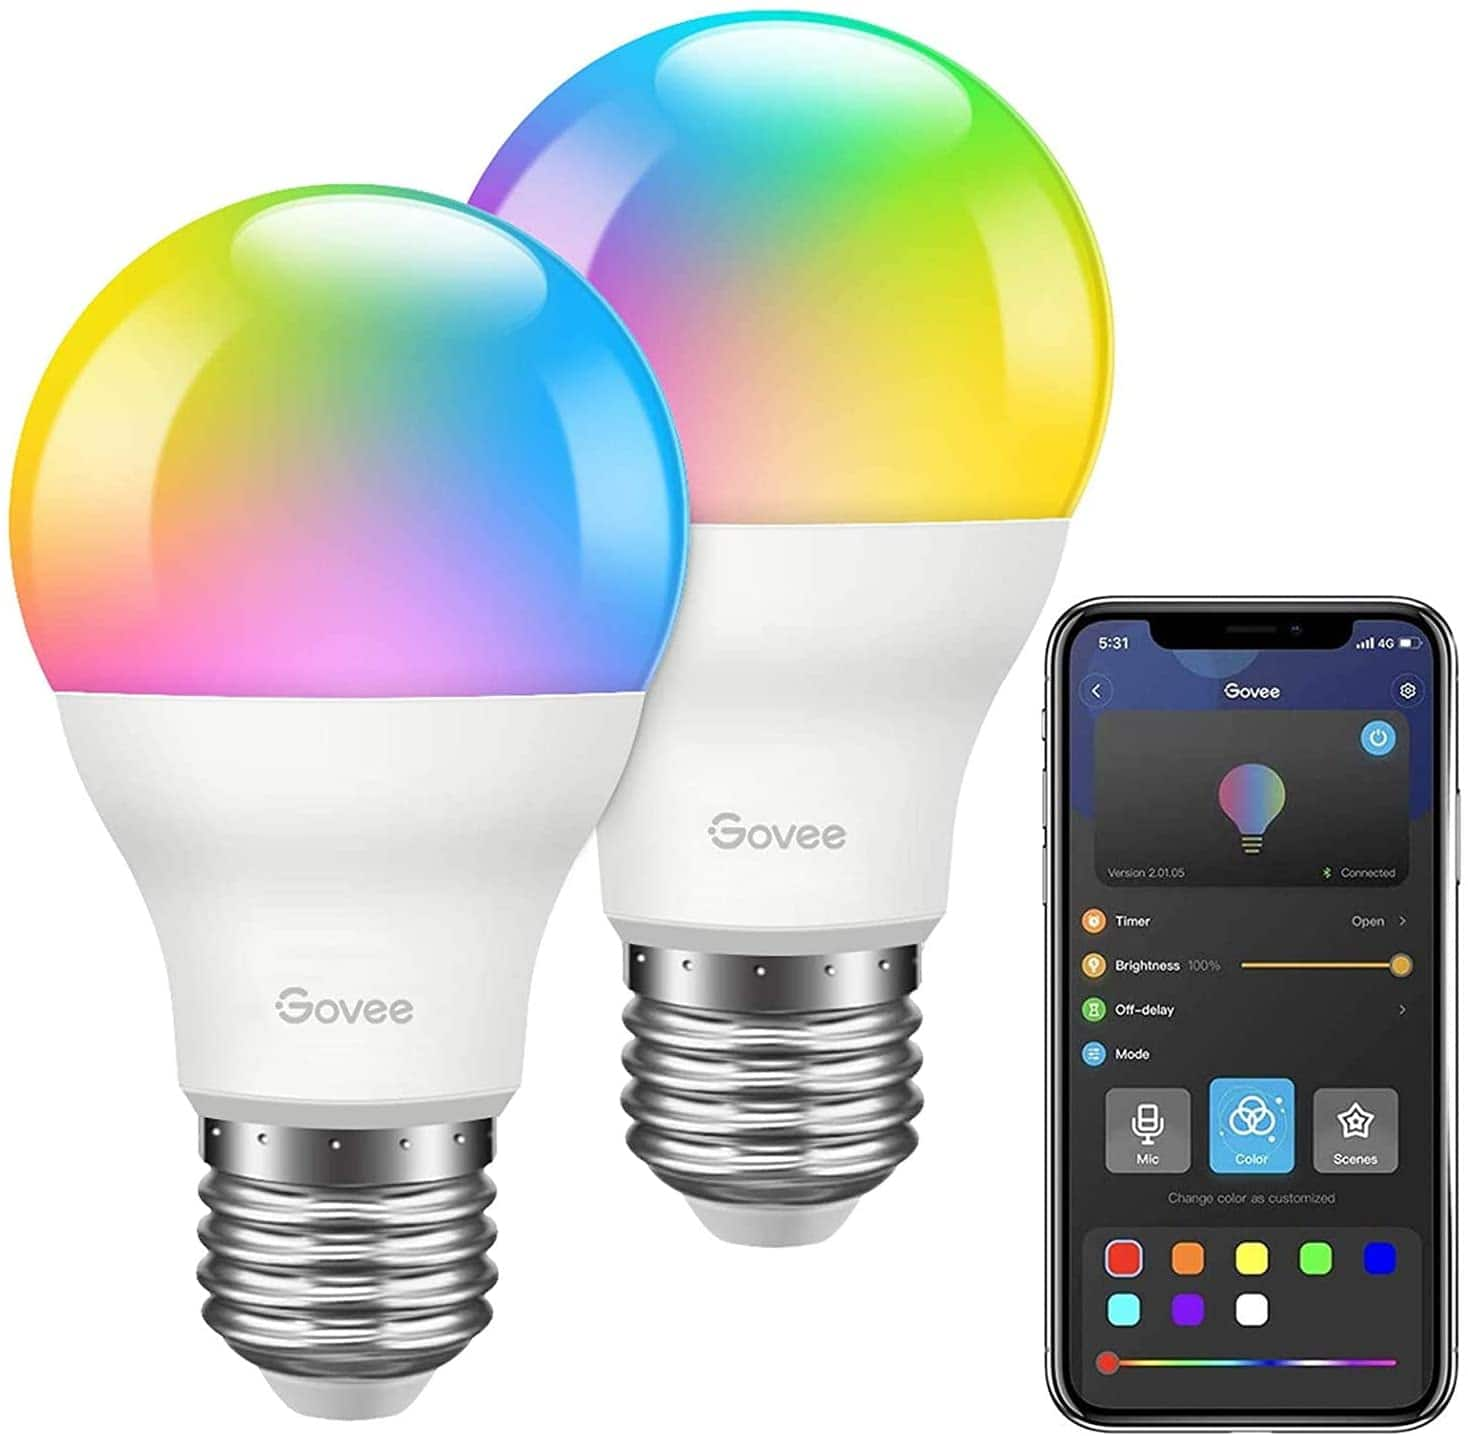 Govee RGB LED Dimmable Bulbs , APP Control, With Music Sync, A19 7W 60W Equivalent, Multi-color Decorative(2 Pack)- $11.99 + Free Shipping